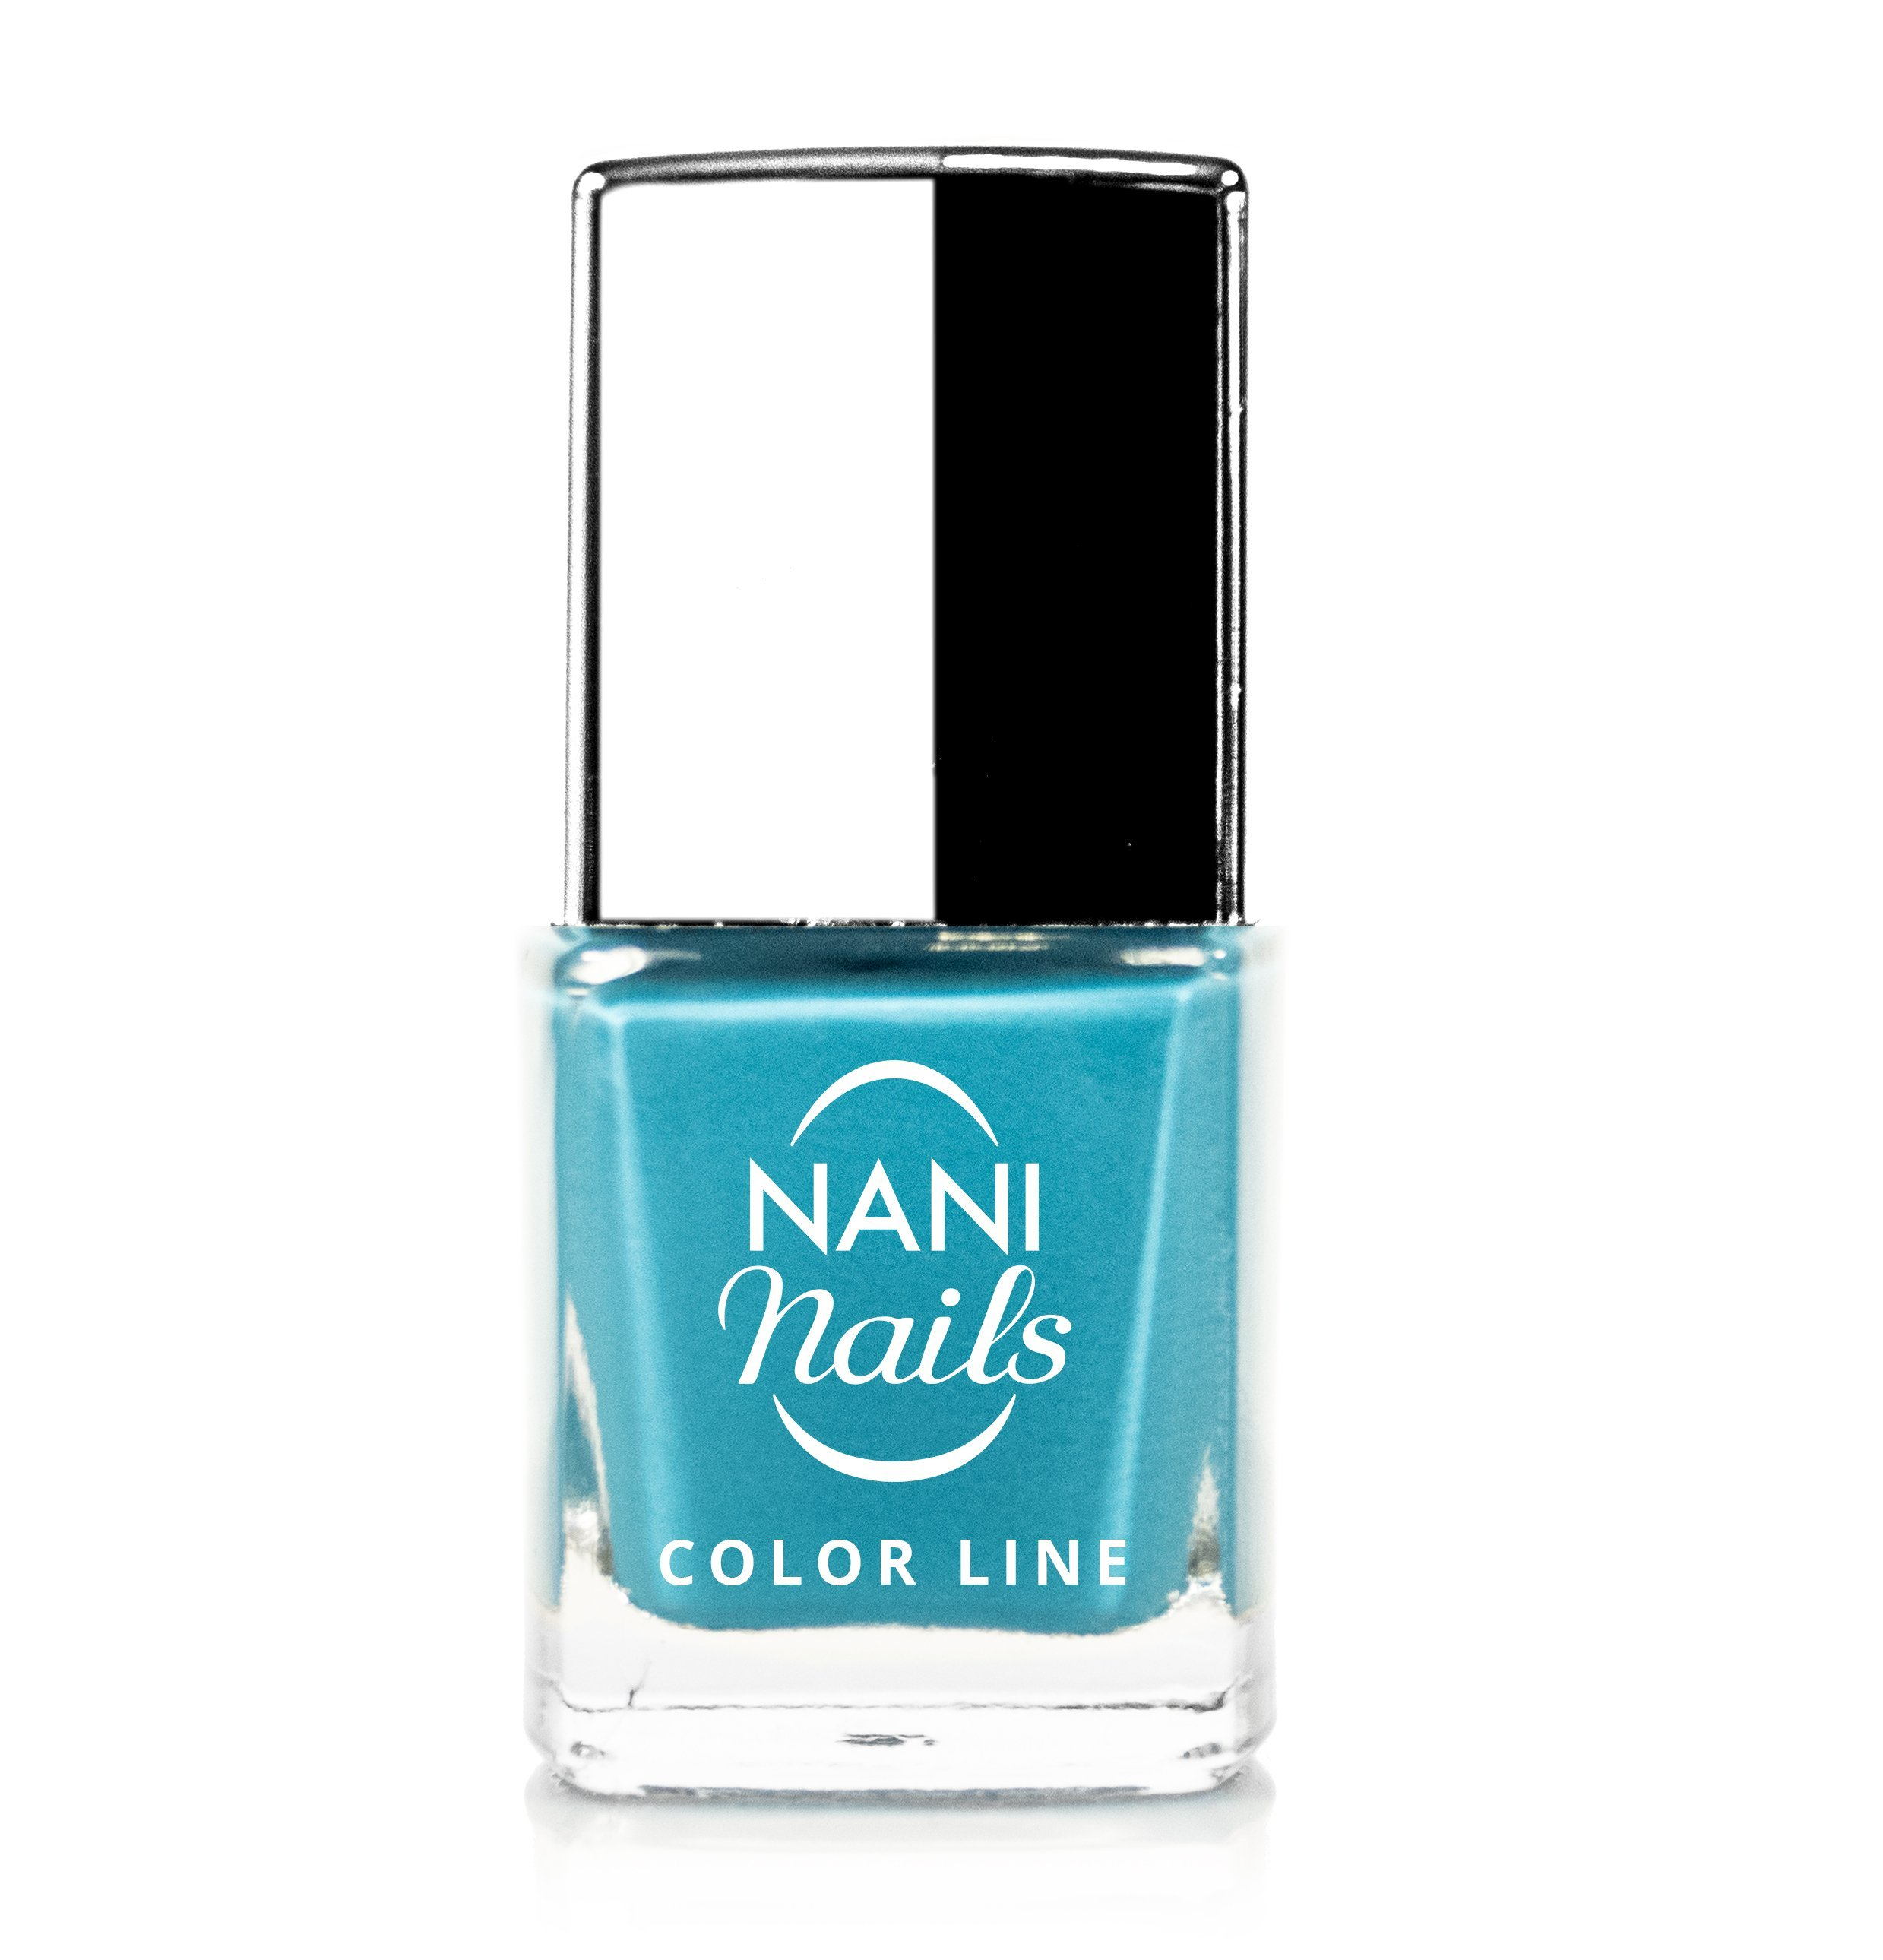 NANI lak Color Line 9 ml - 33